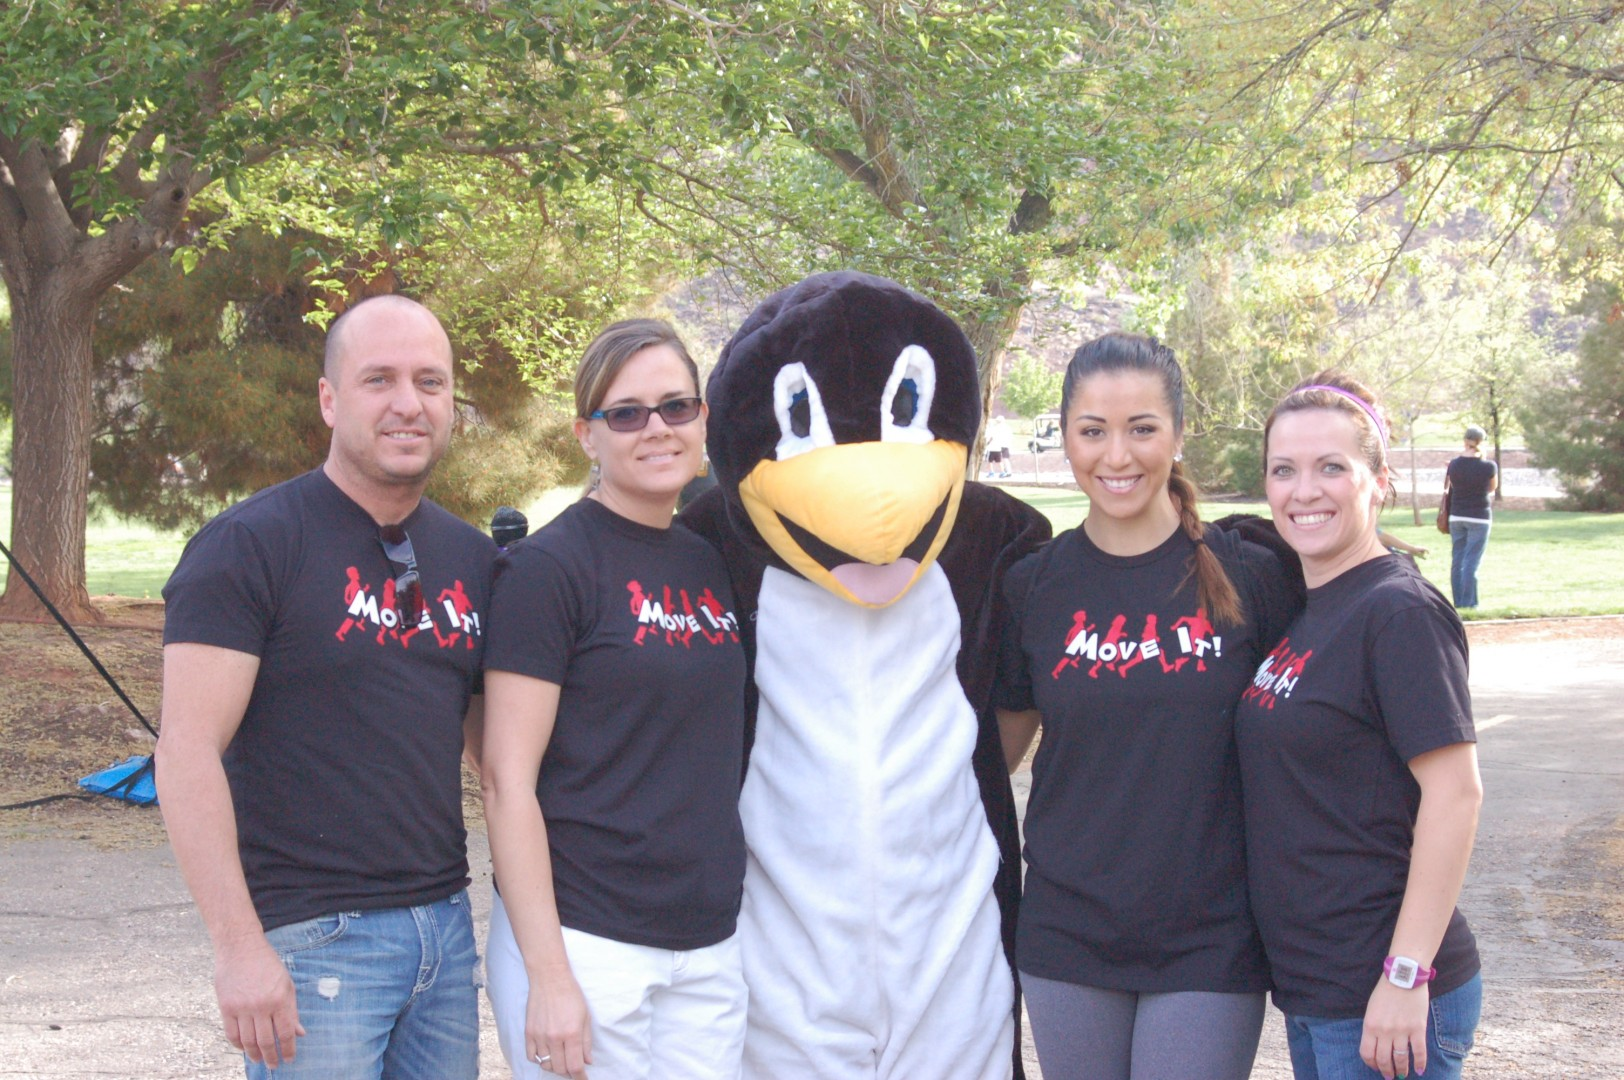 L-R Tracy Stevens, Rebecca Stevens, unnamed penguin, Josie Martinez, Sarah Reber, mentors in the Move It program pose for a photo at the Family Fun Bike Ride held at Tonaquint Nature Center, St. George, Utah, April 12, 2014   Photo by Hollie Reina